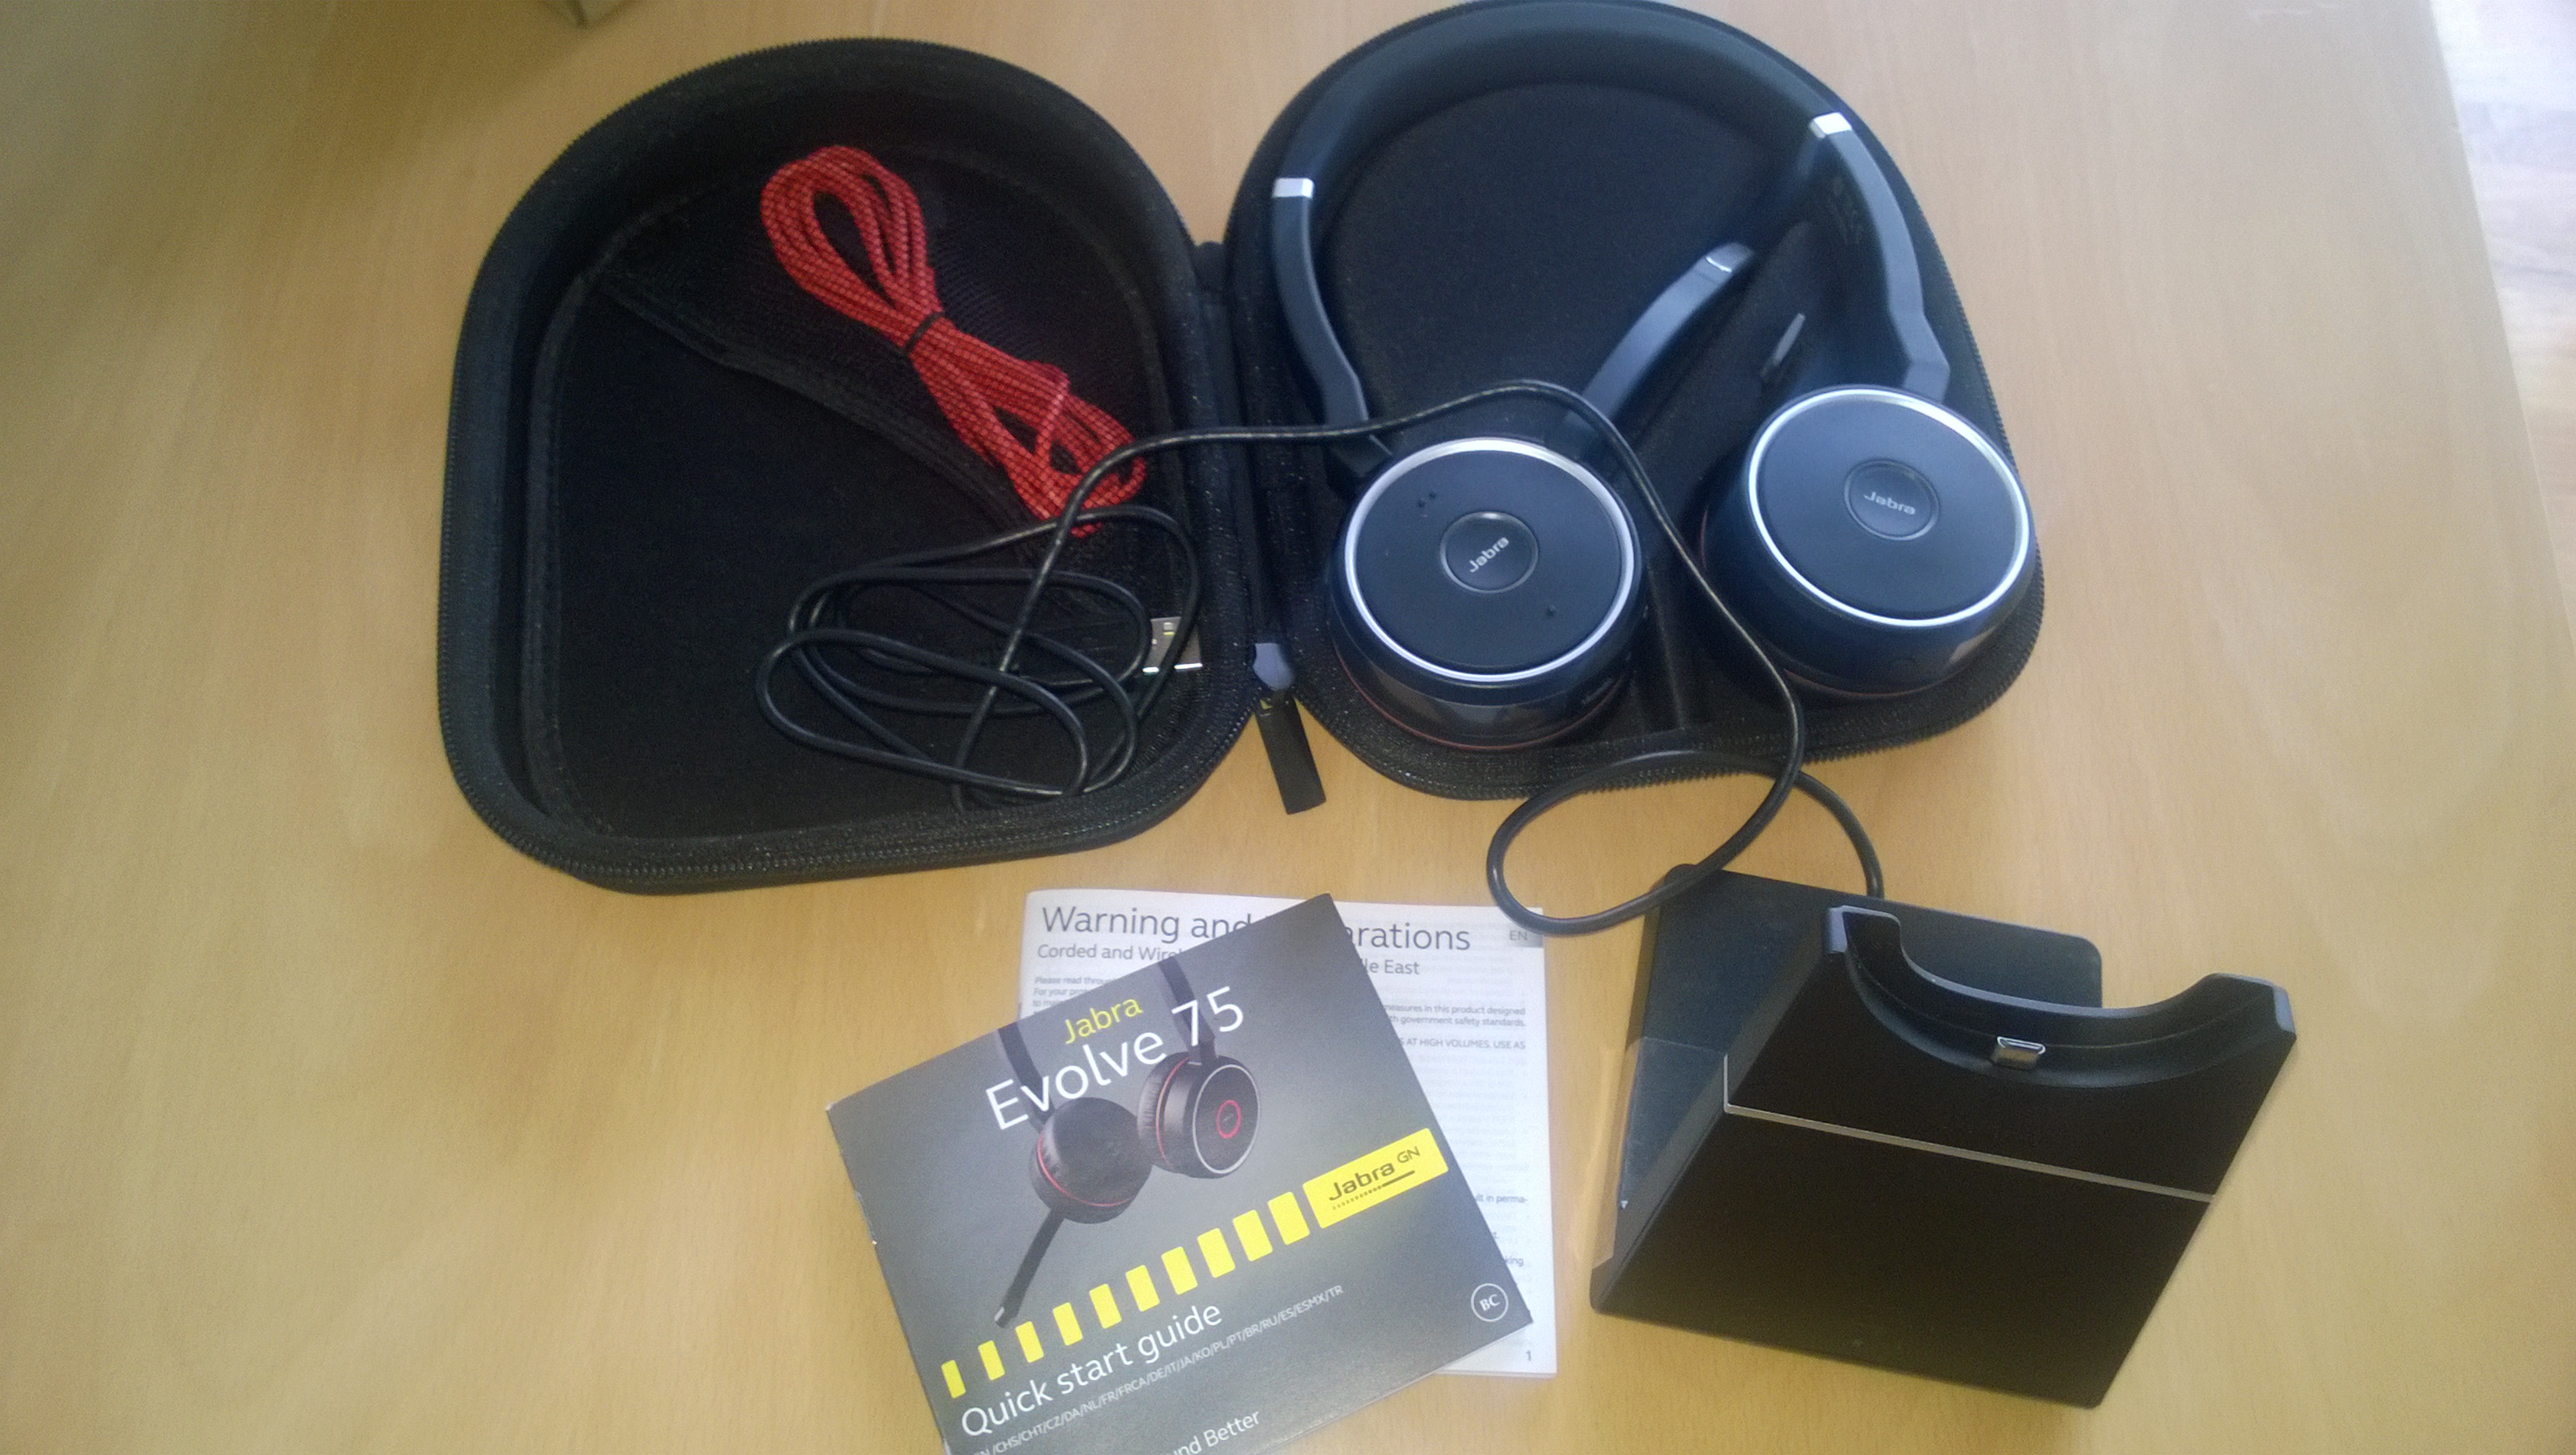 Review The Jabra Evolve 75 Headphones And Stand Jabra Jabraevolve75 Office Techbuzzireland